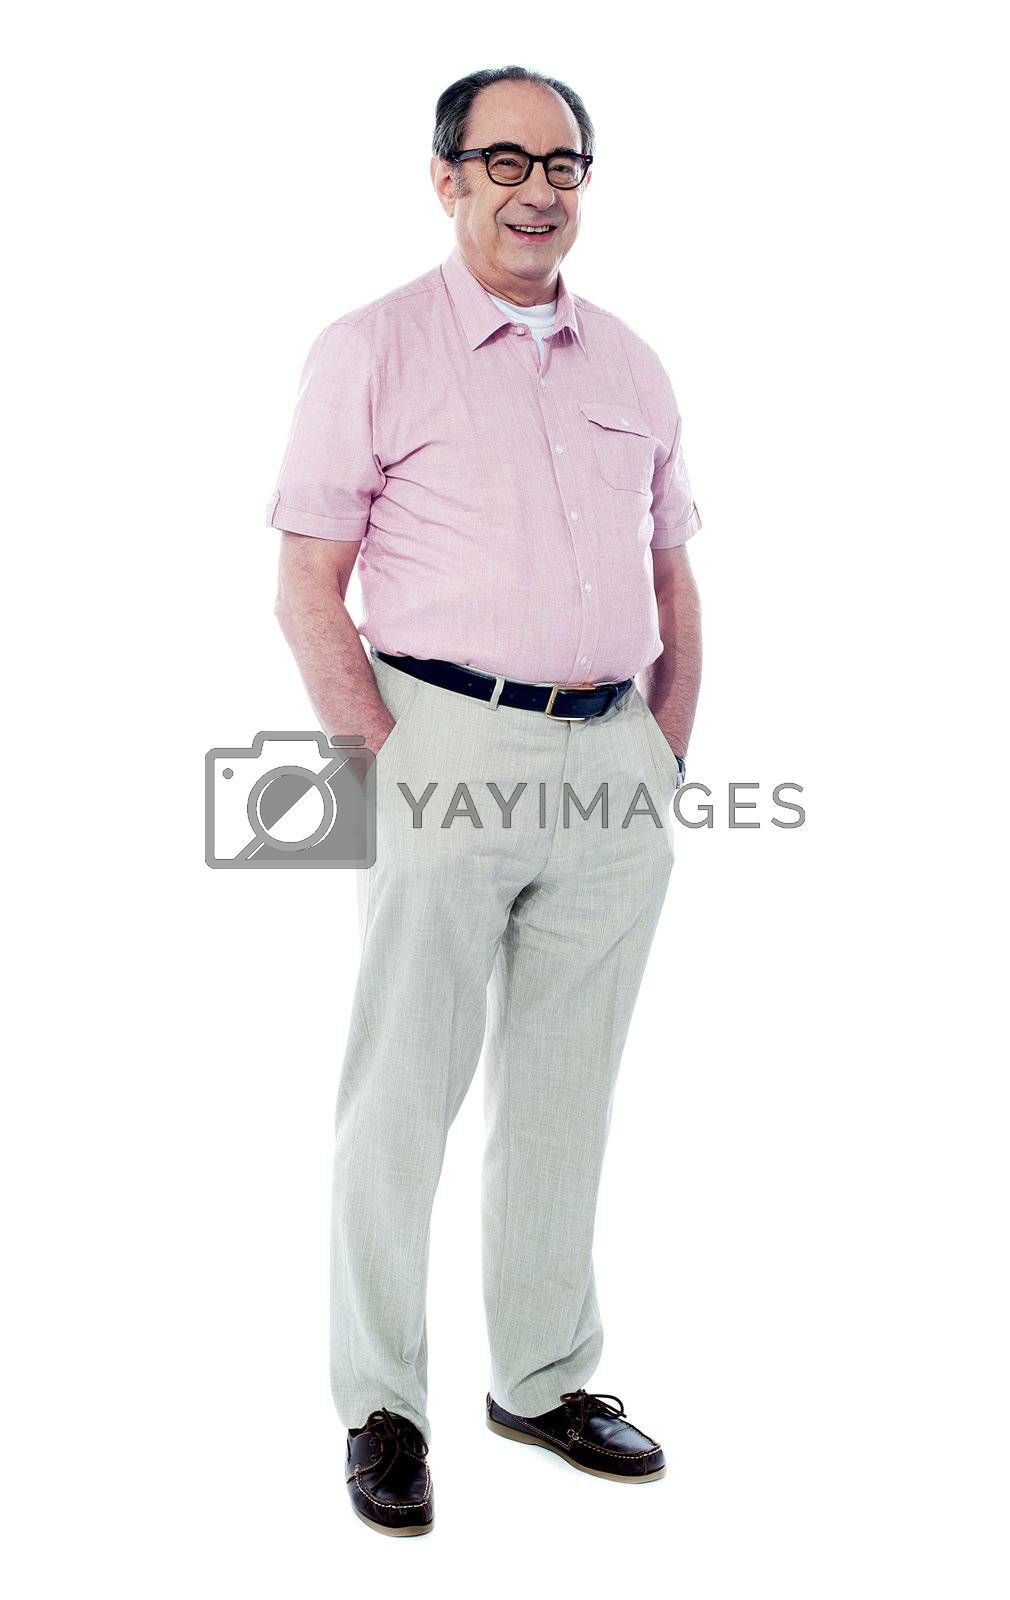 Joyful senior man posing casually with hands in pocket isolated on white